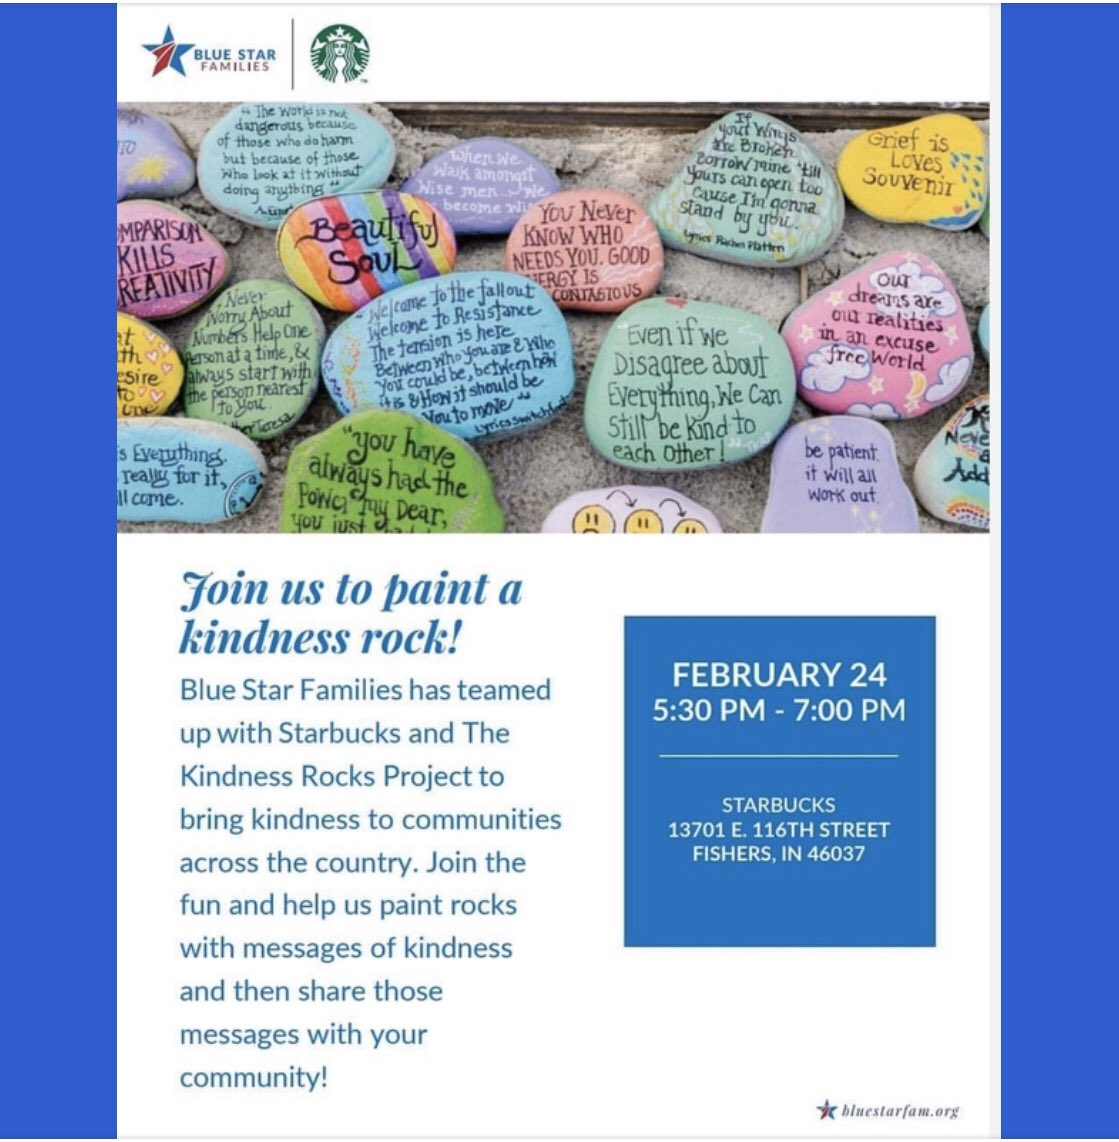 We have some exciting news & events to share@starbucks has teamed up with the @bluestarfamilies & #thekindnessrocksproject  to spread some kindness in communities across the country swipe to see if an event is coming to your community soon!pic.twitter.com/e8XNT4w3K6